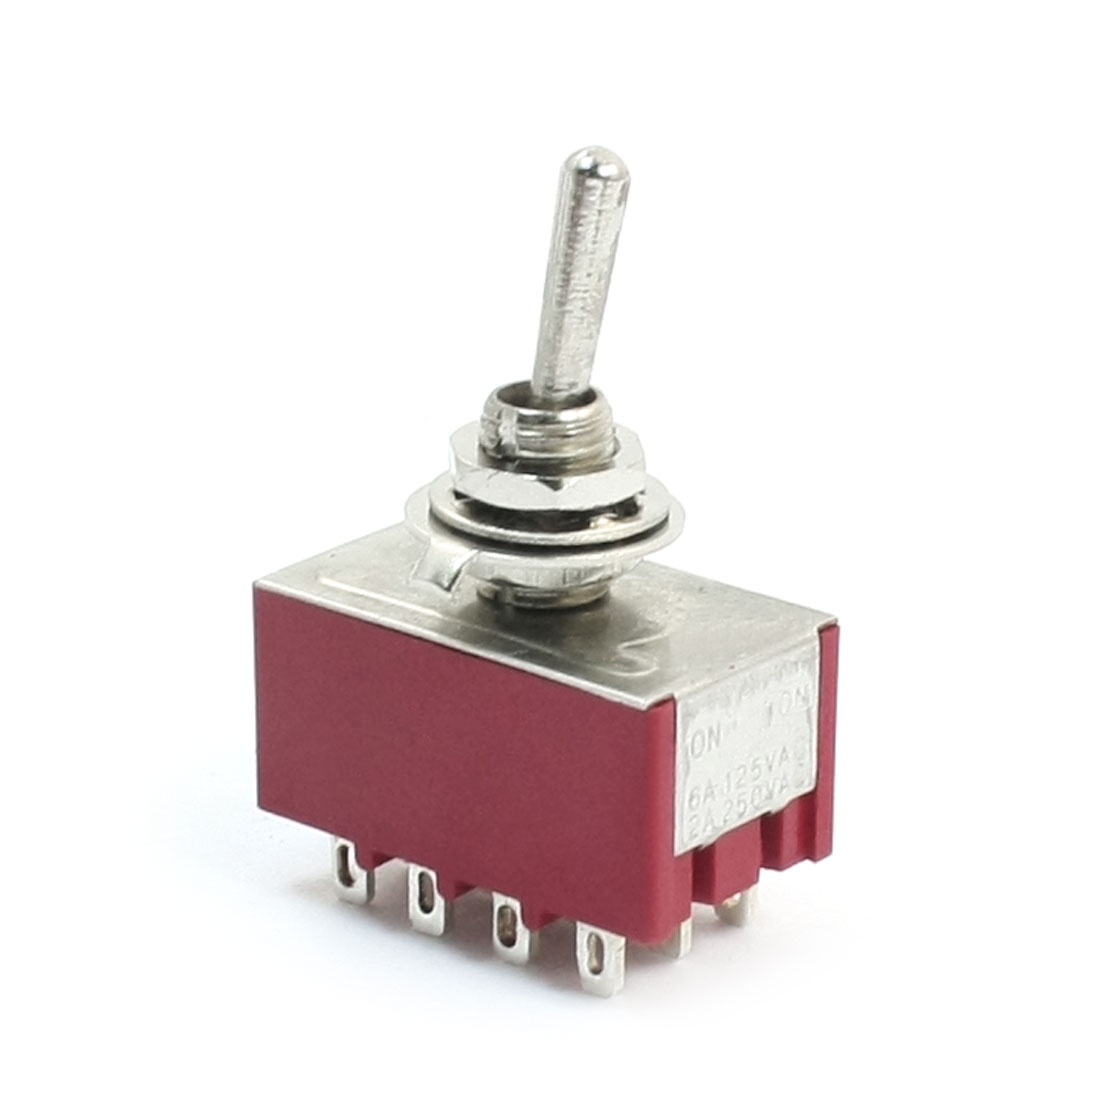 AC 250V 2A 125V 6A 4P2T 2 Positions 12 Terminals Rocker Toggle Switch